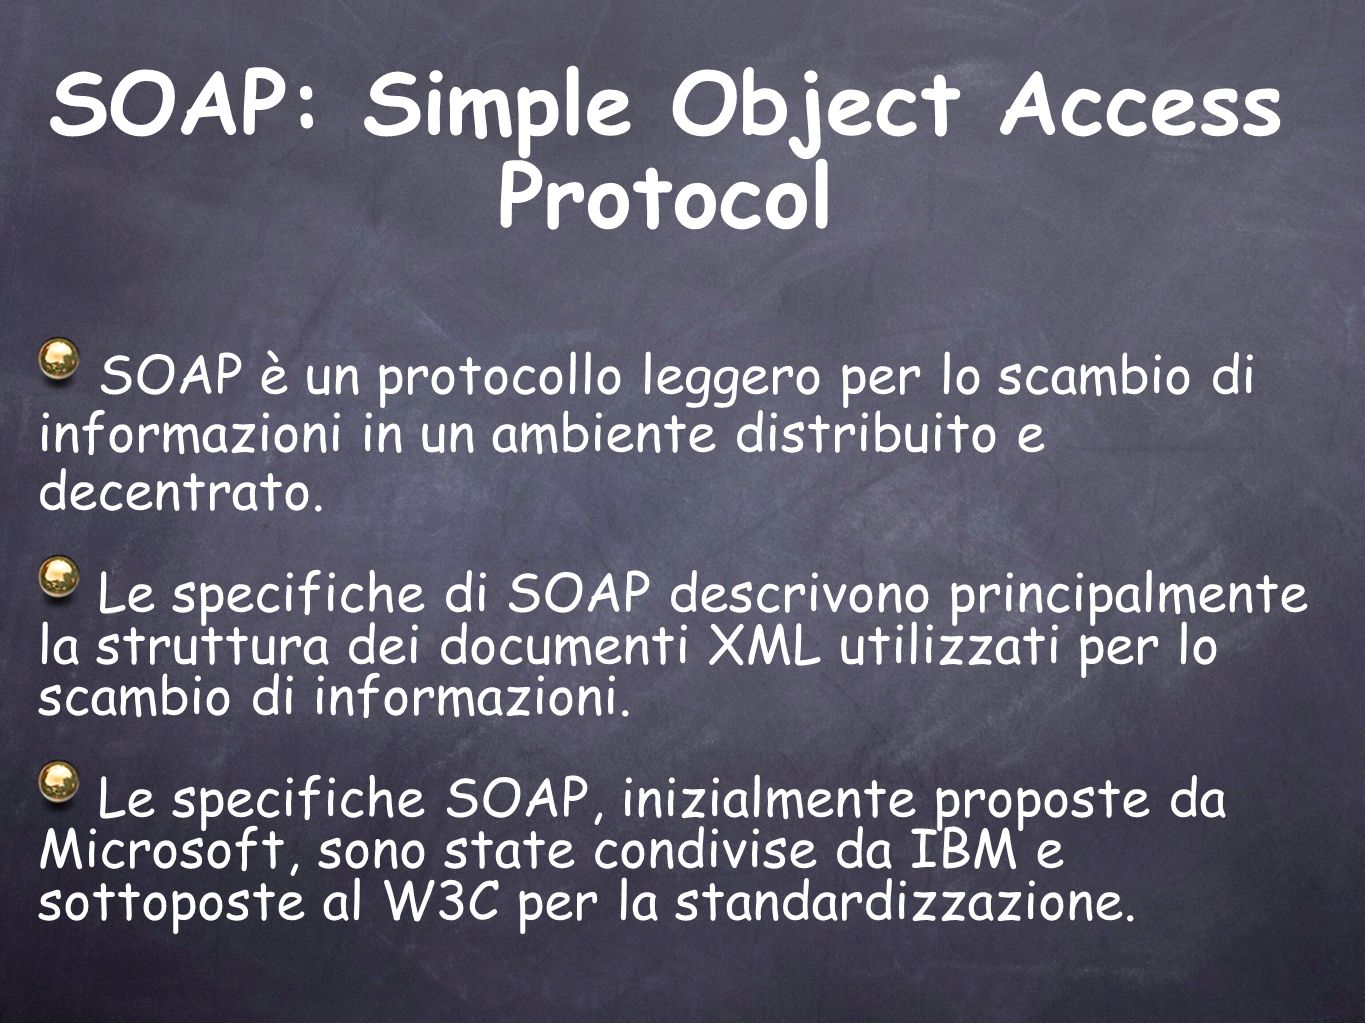 SOAP: Simple Object Access Protocol